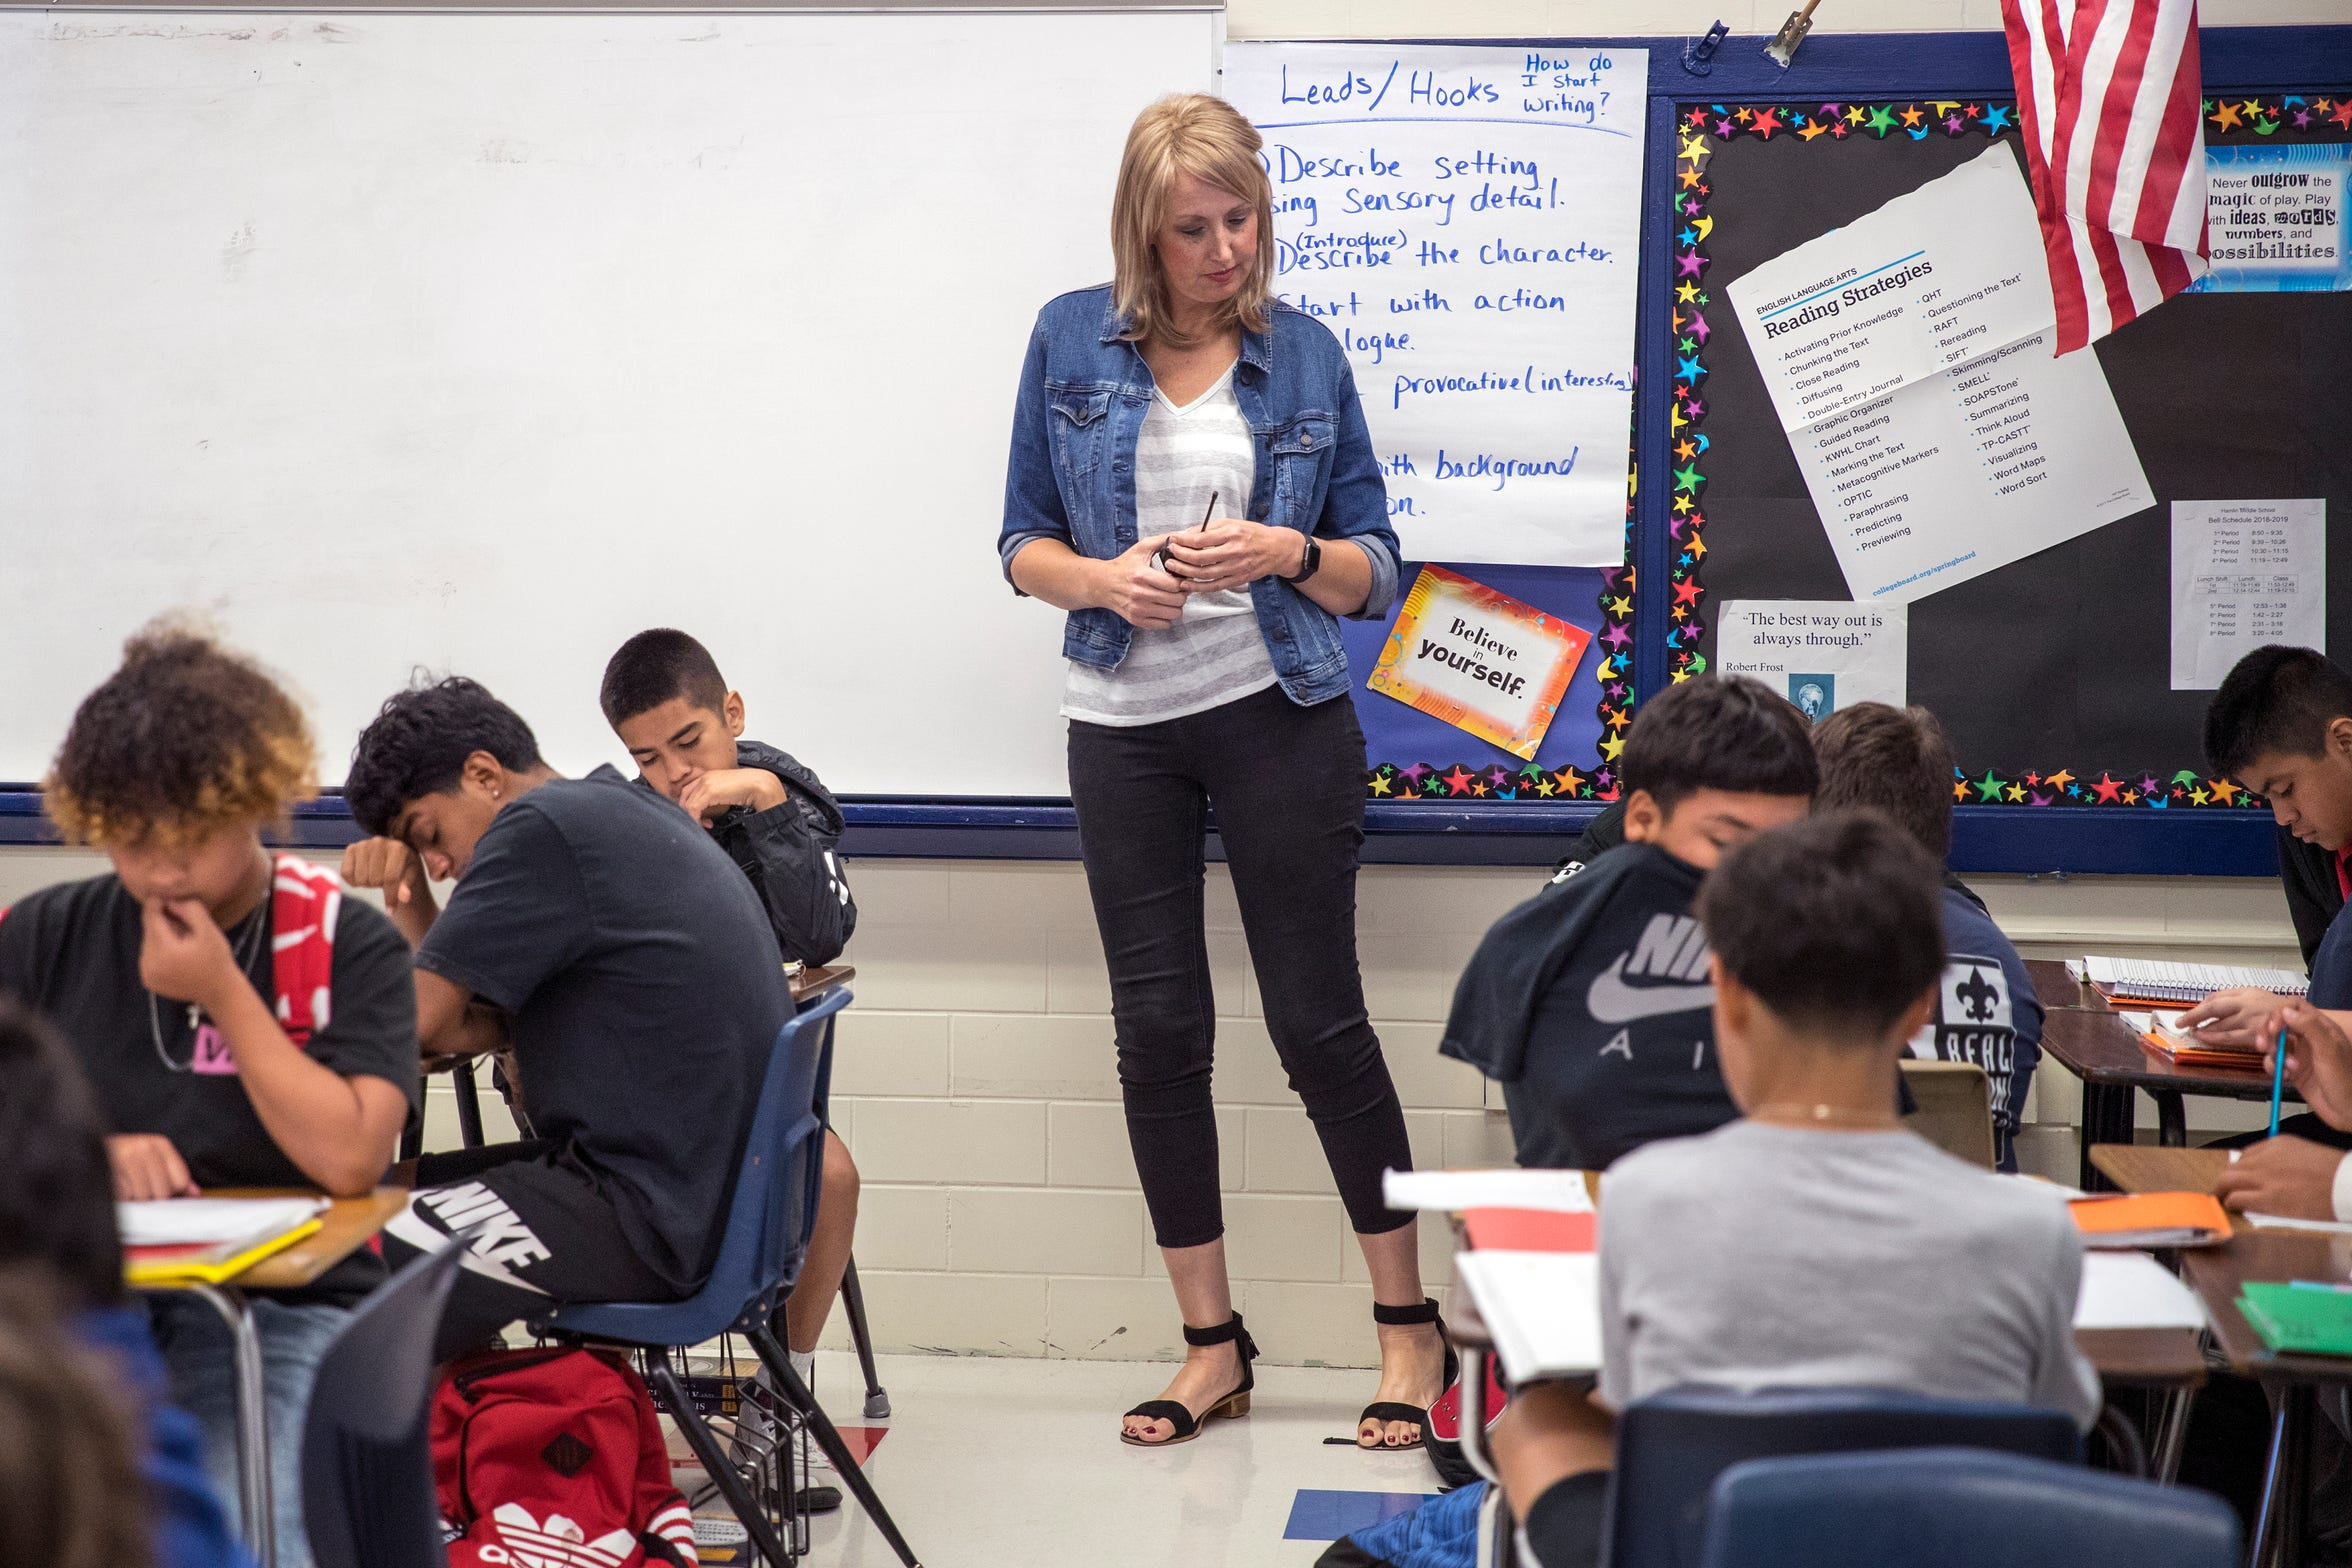 Prudence Farrell, principal of Hamlin Middle School, observes a class on Tuesday, October 8, 2019. Farrell was was diagnosed with an aggressive form of breast cancer shortly after turning 40. She completed her final chemotherapy treatment a couple of weeks ago and will undergo surgery later this year. She's been open with the students about her diagnosis.